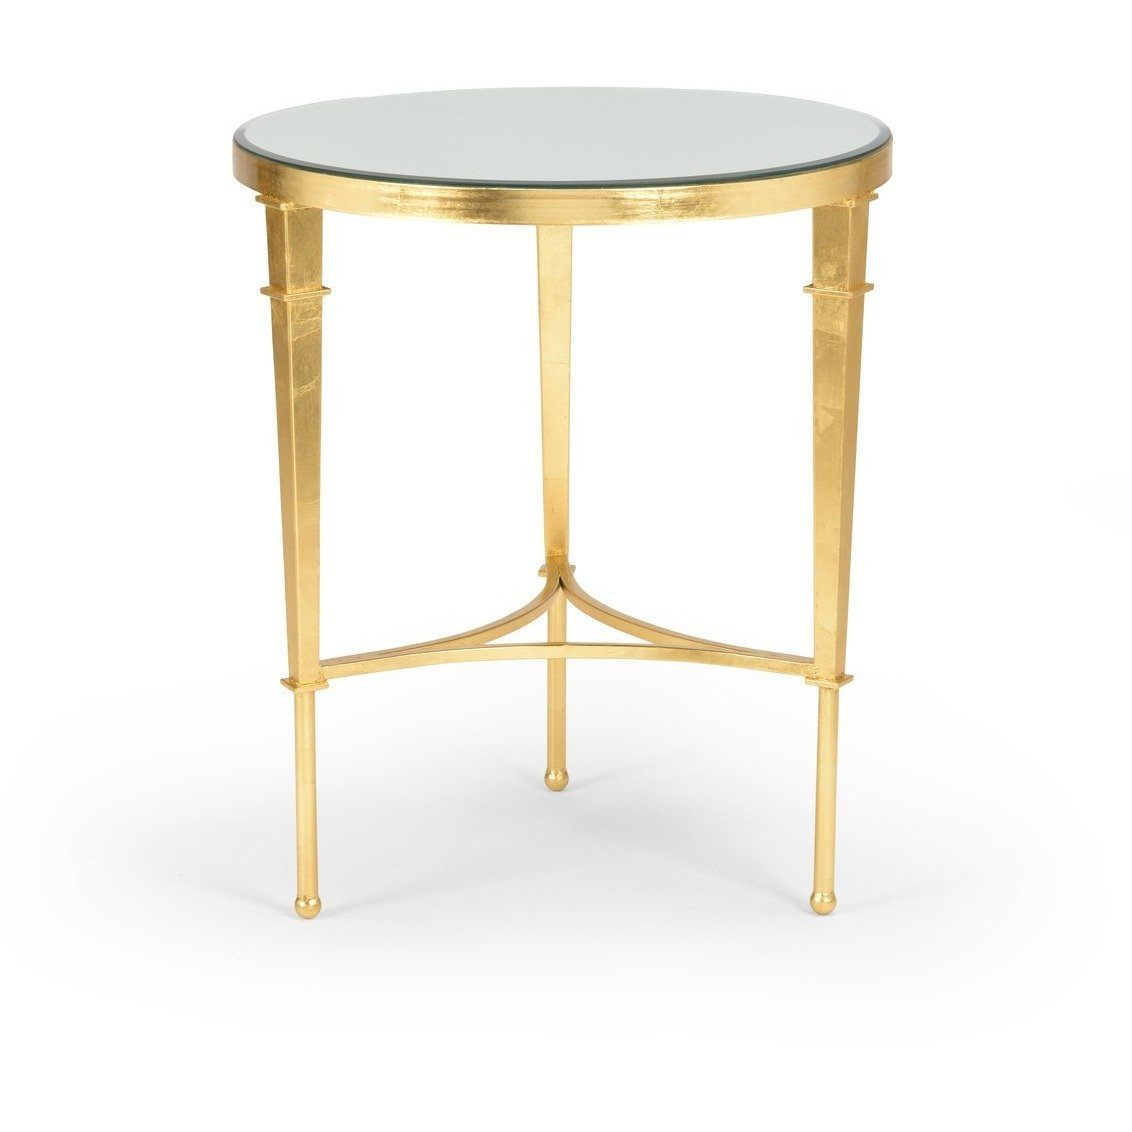 Chelsea House Round Regent Table-Gold 381864 - LOVECUP